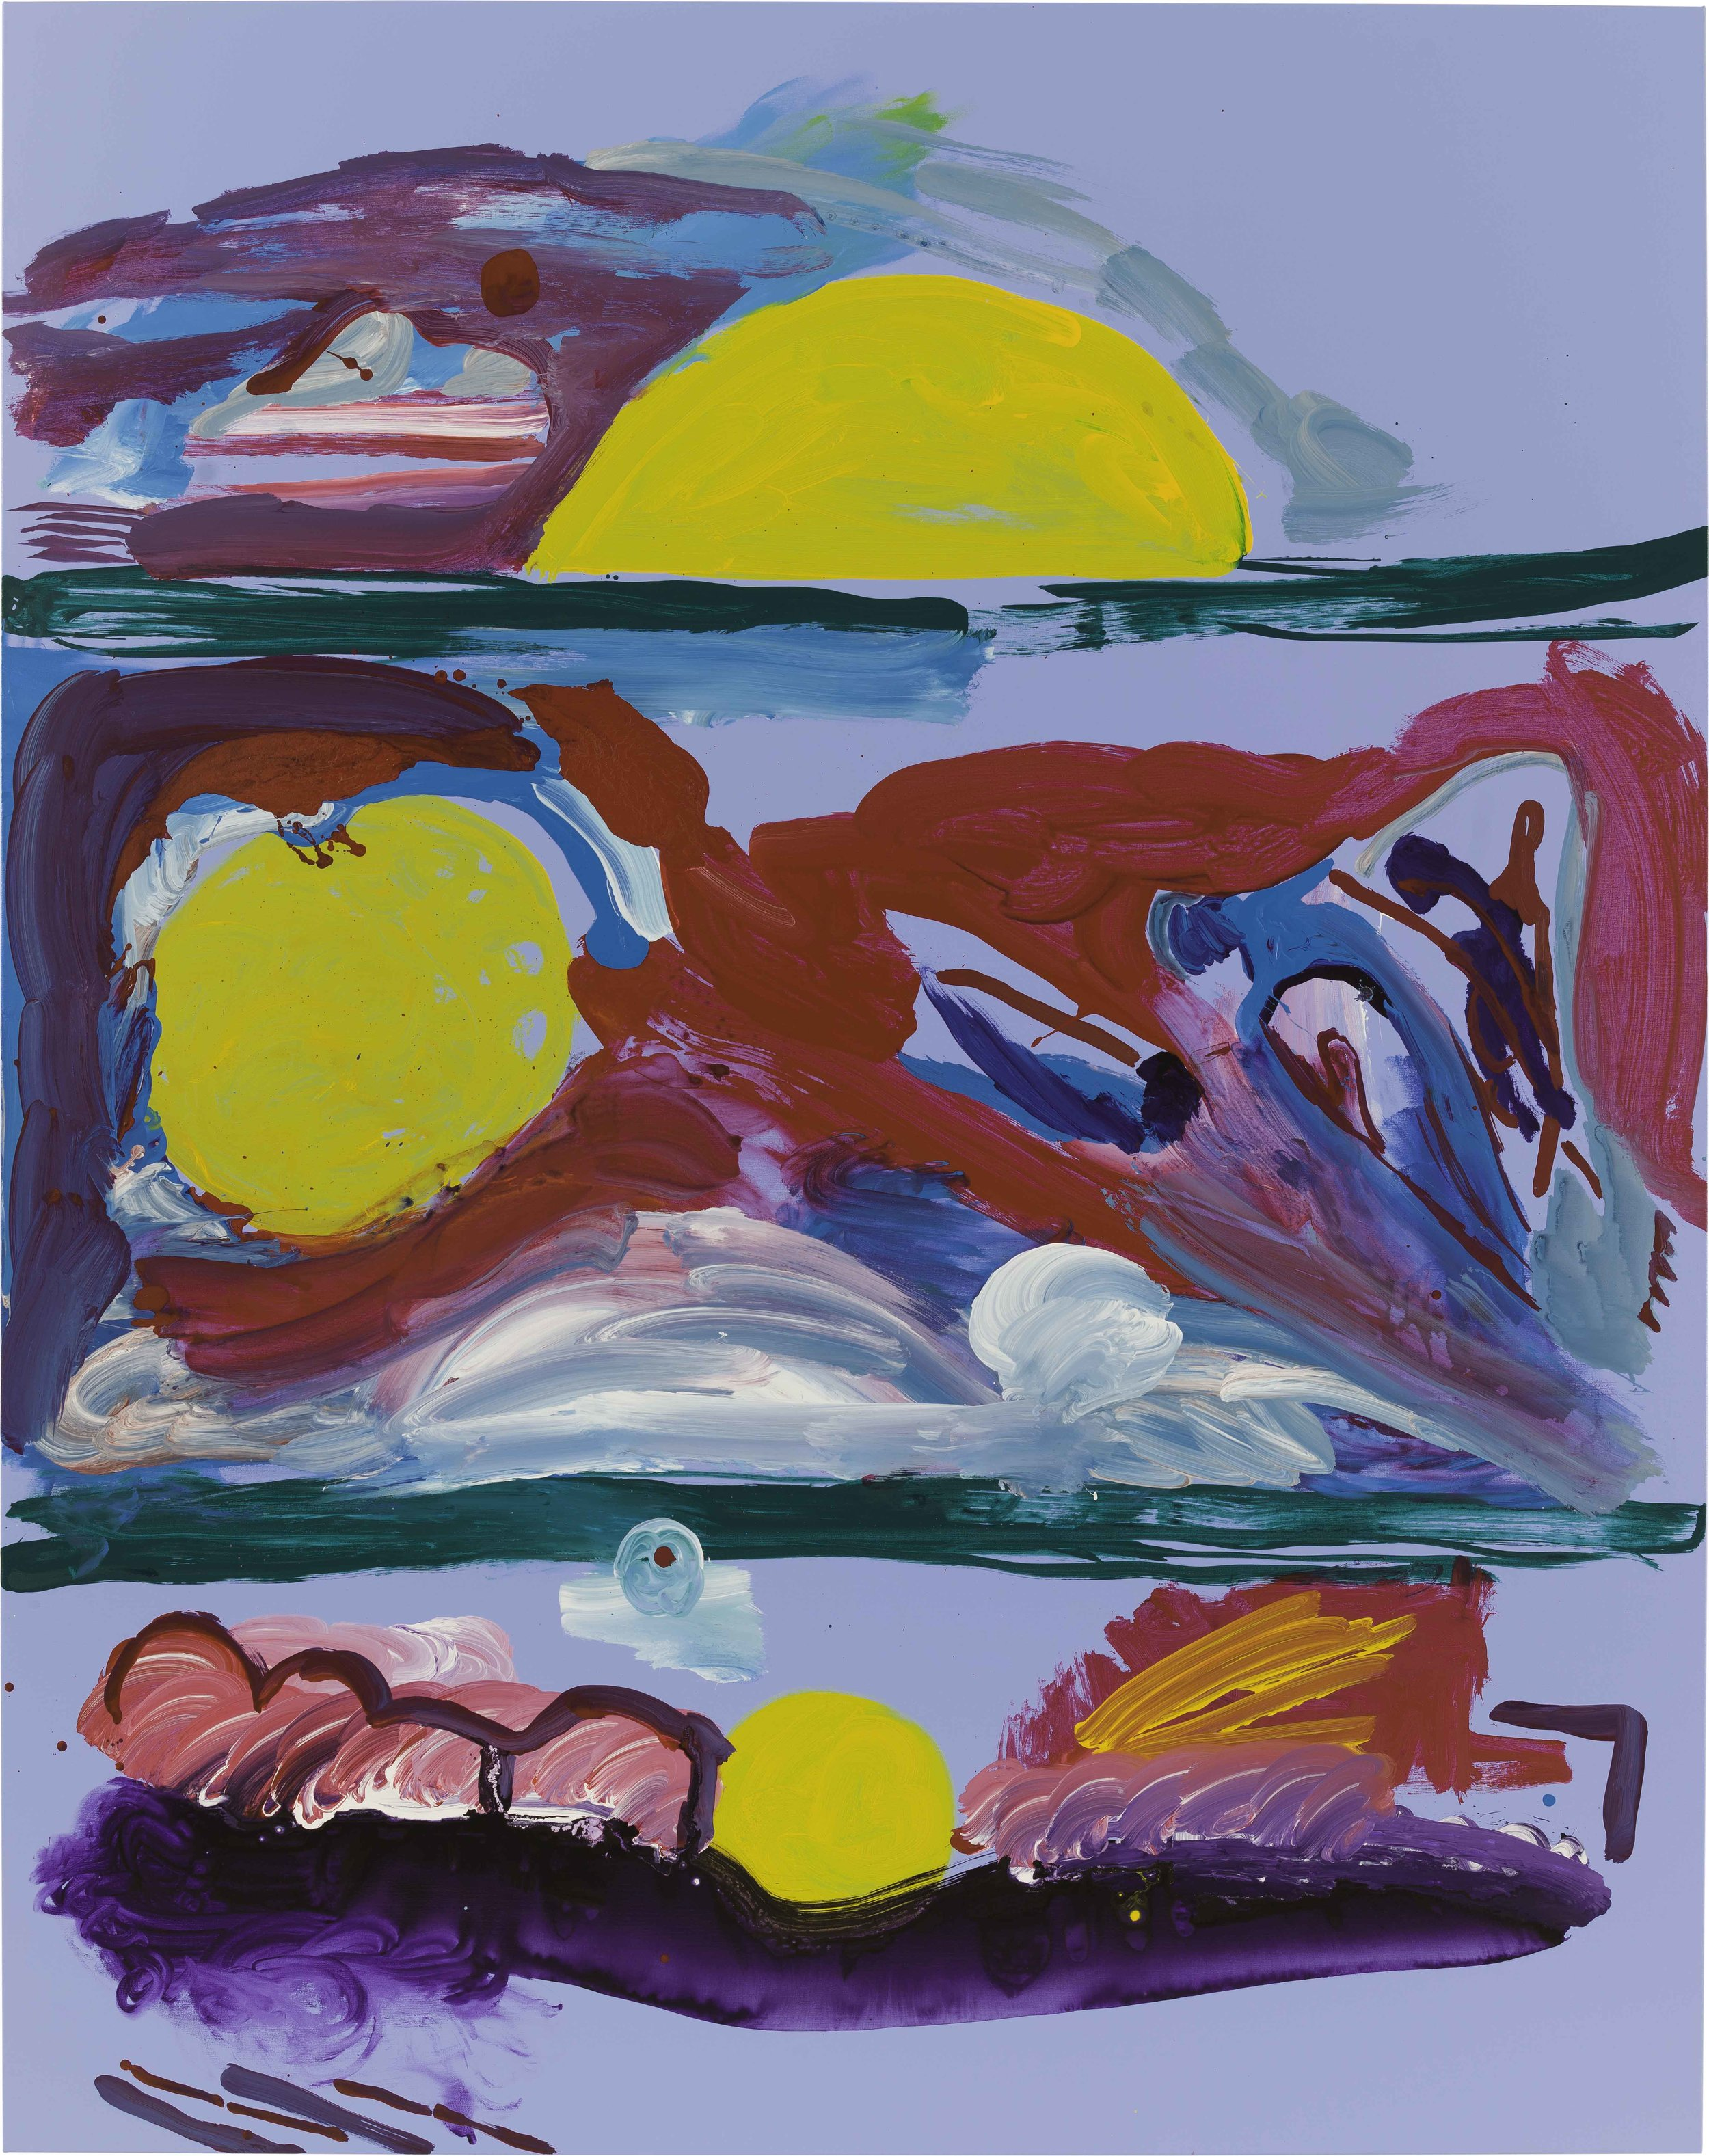 Drew Beattie and Ben Shepard  Shelves with Swimmers and Flyers at Dawn  2015 acrylic on canvas 96 x 76 inches